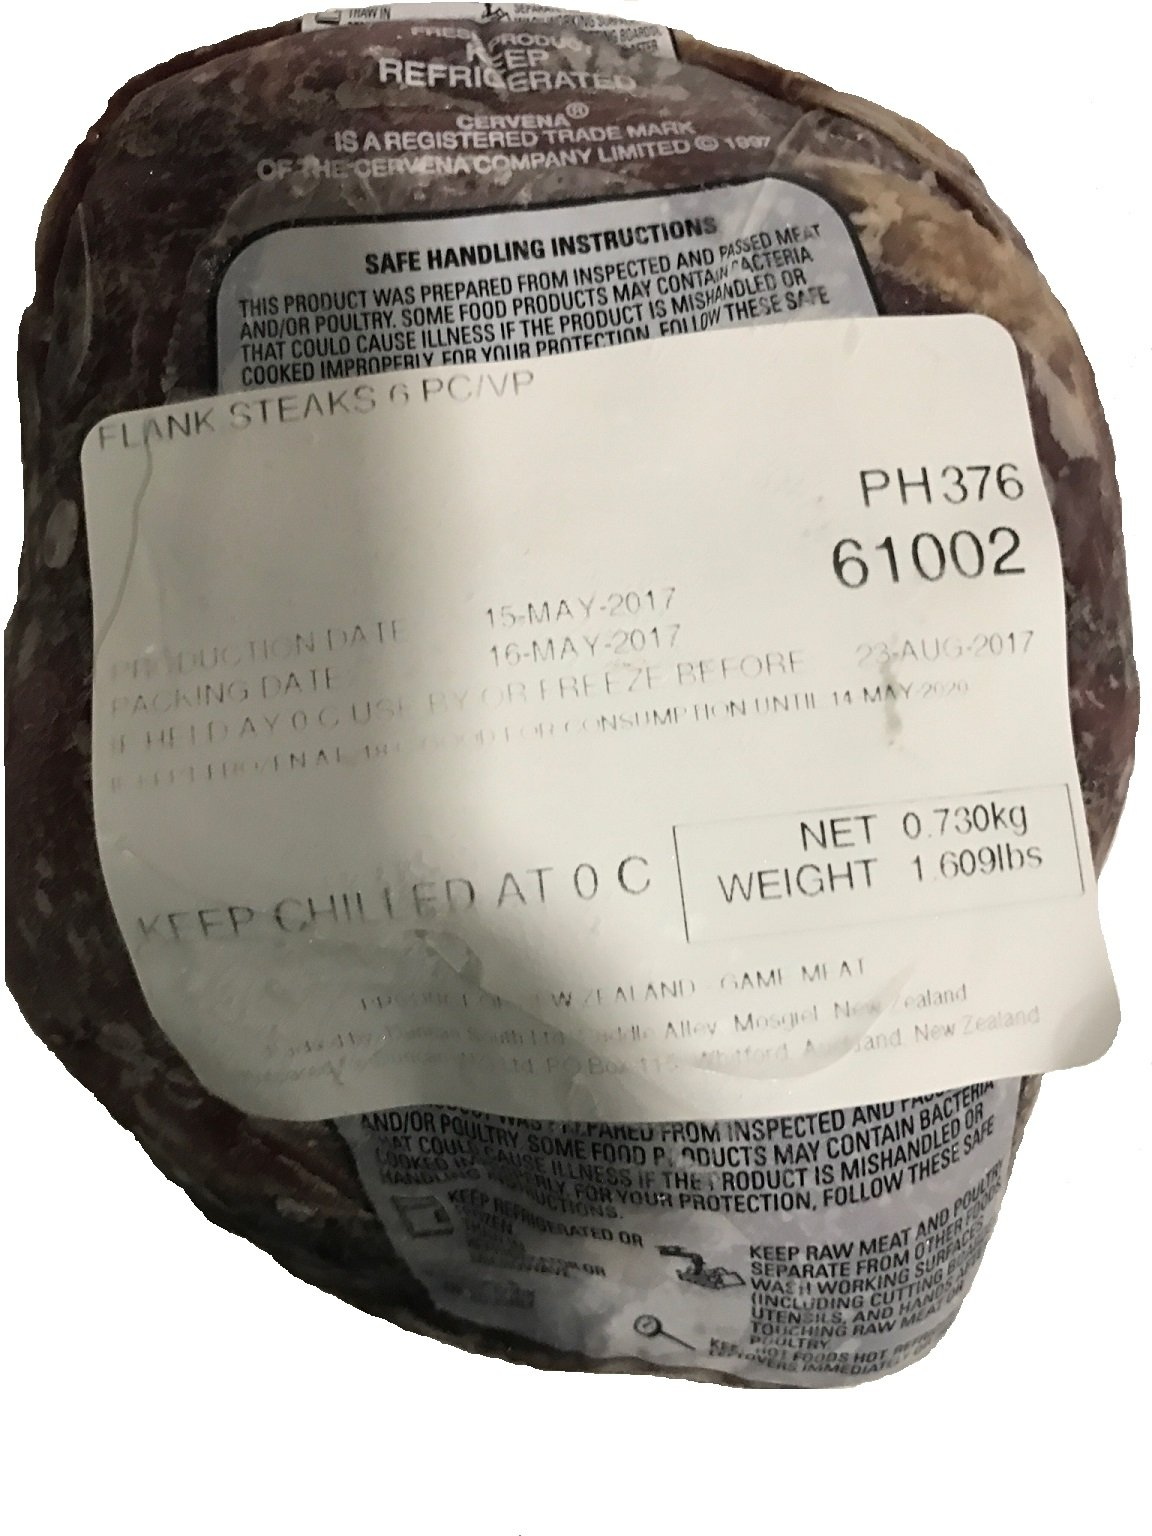 Venison Flank Steak 6 Qty/ 1- bag, Total 1.6 lbs plus